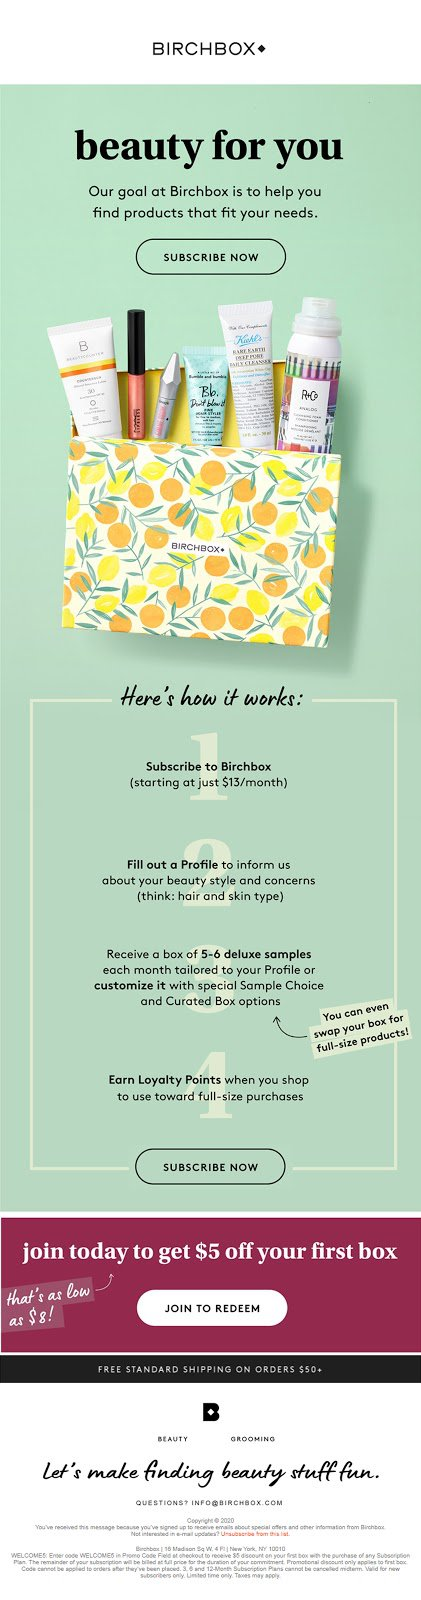 Birchbox Example - 2nd Email in Series